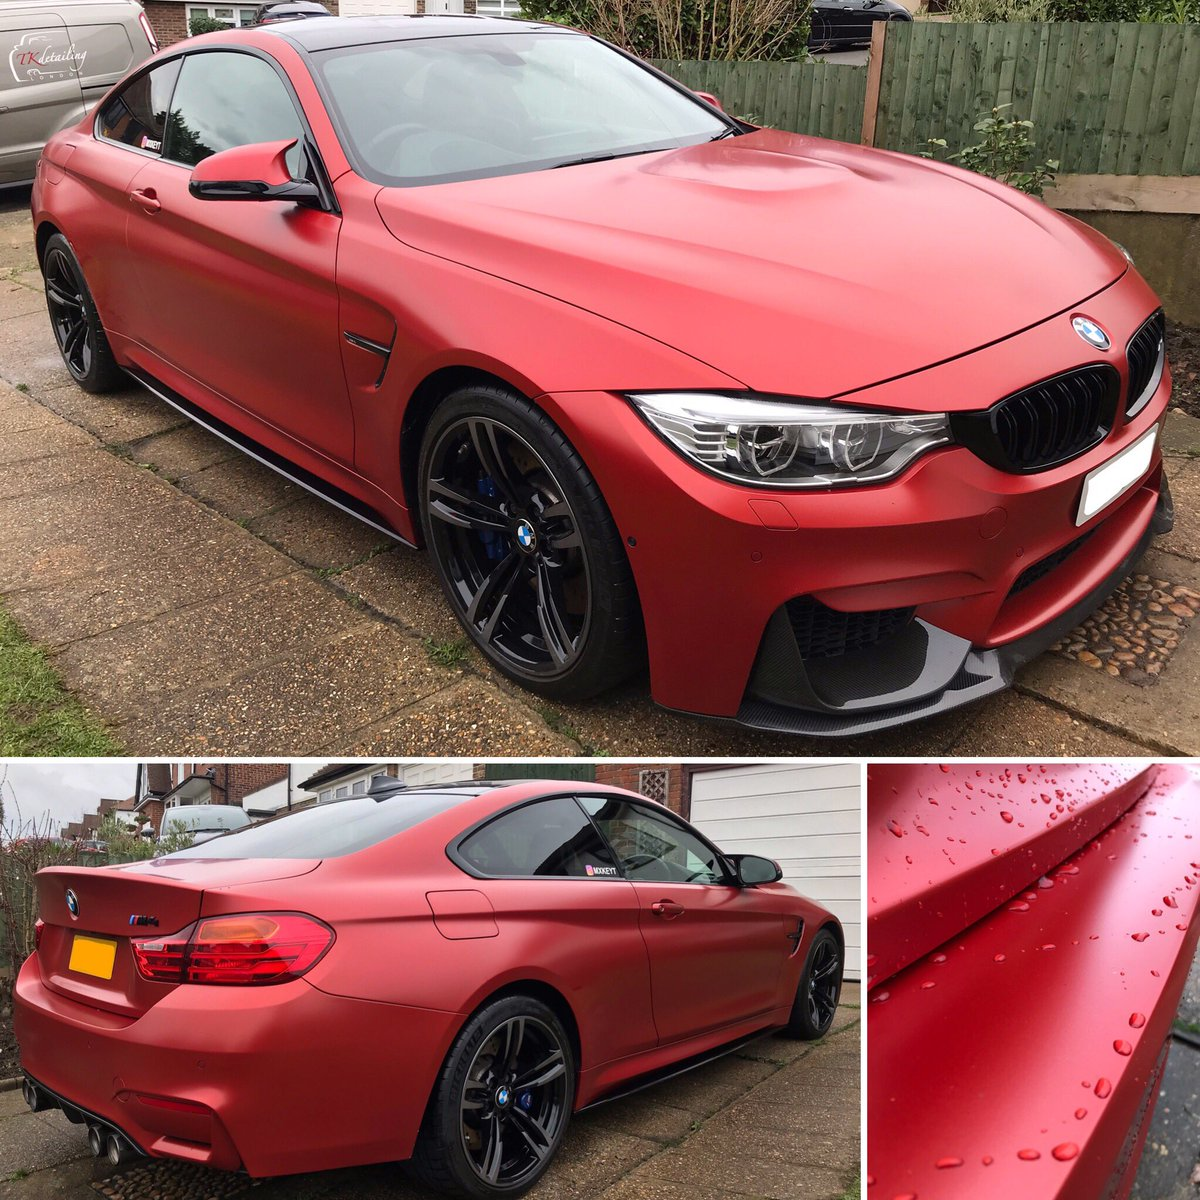 Tkdetailing London On Twitter Frozen Red Bmw M4 Matte Valet Frozen Red Carswithoutlimits Details Detailing Mpower Itsallinthedetails Carcare Automotive Experiencetruedetailing Carporn Itswhitenoise Pvdapproved Tkdetailingcars